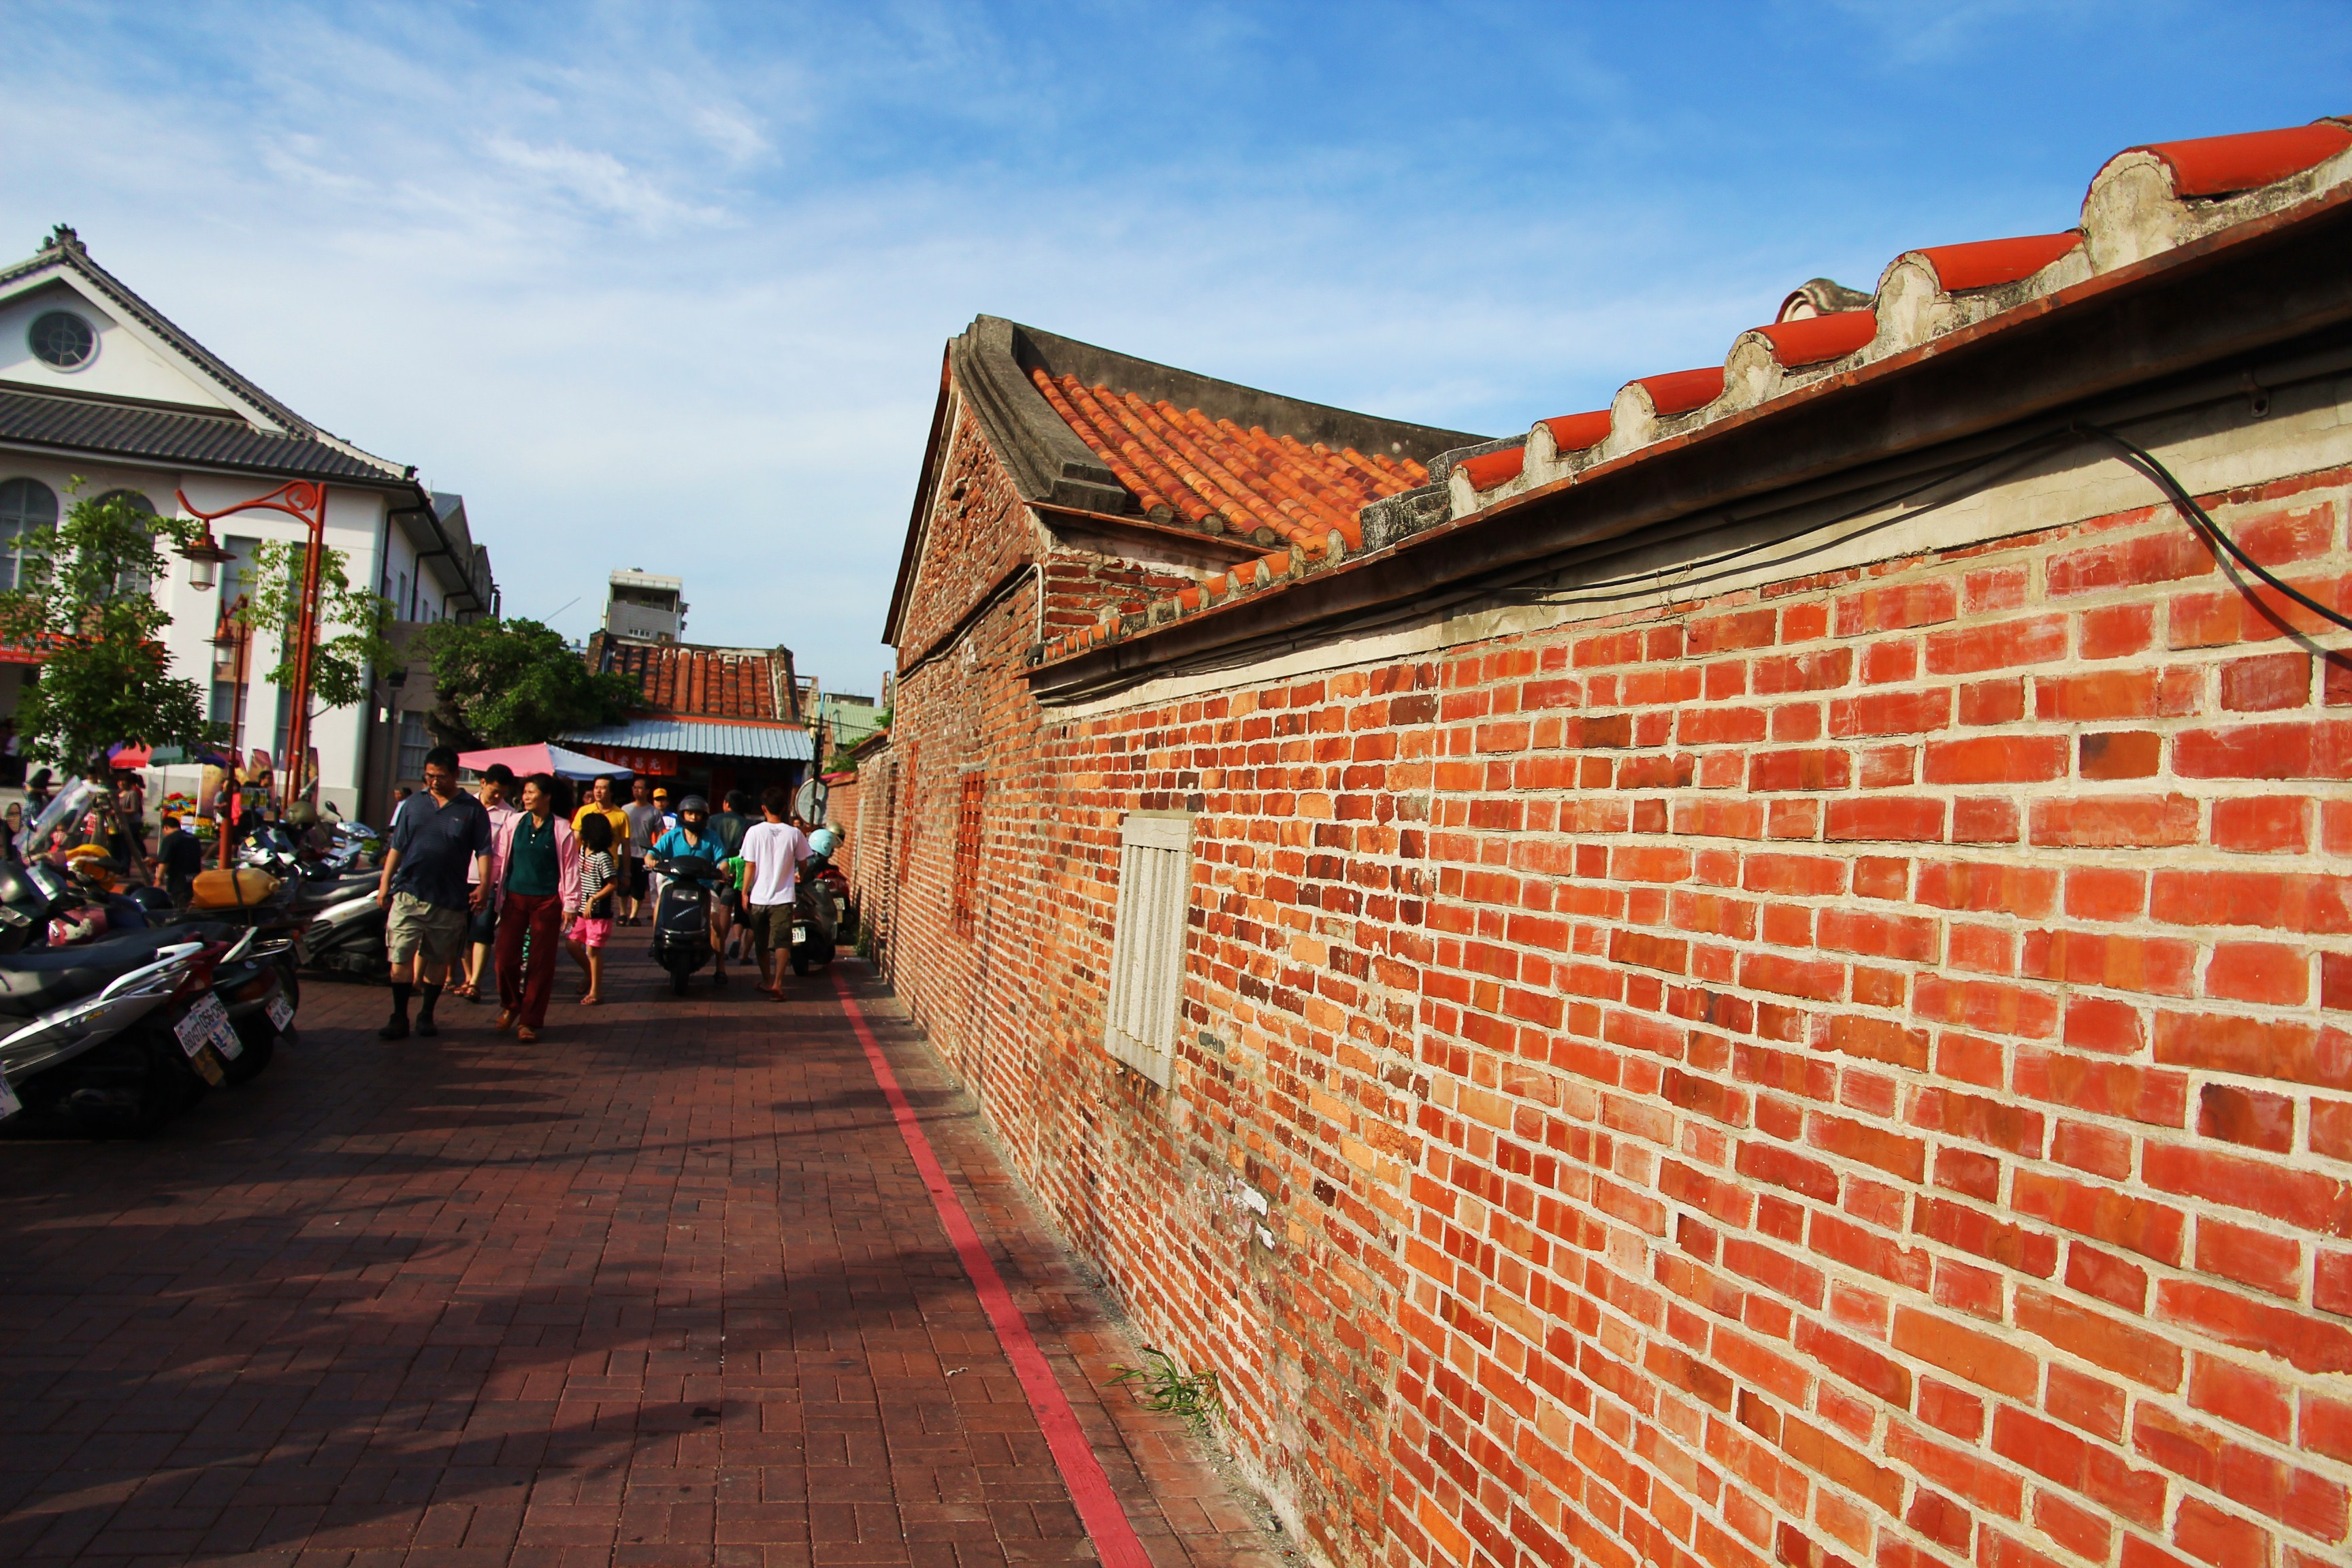 Lukang Old Street Lukang, Sunrise at Alishan, Unplanned Lugang Old Street, ended up in ...